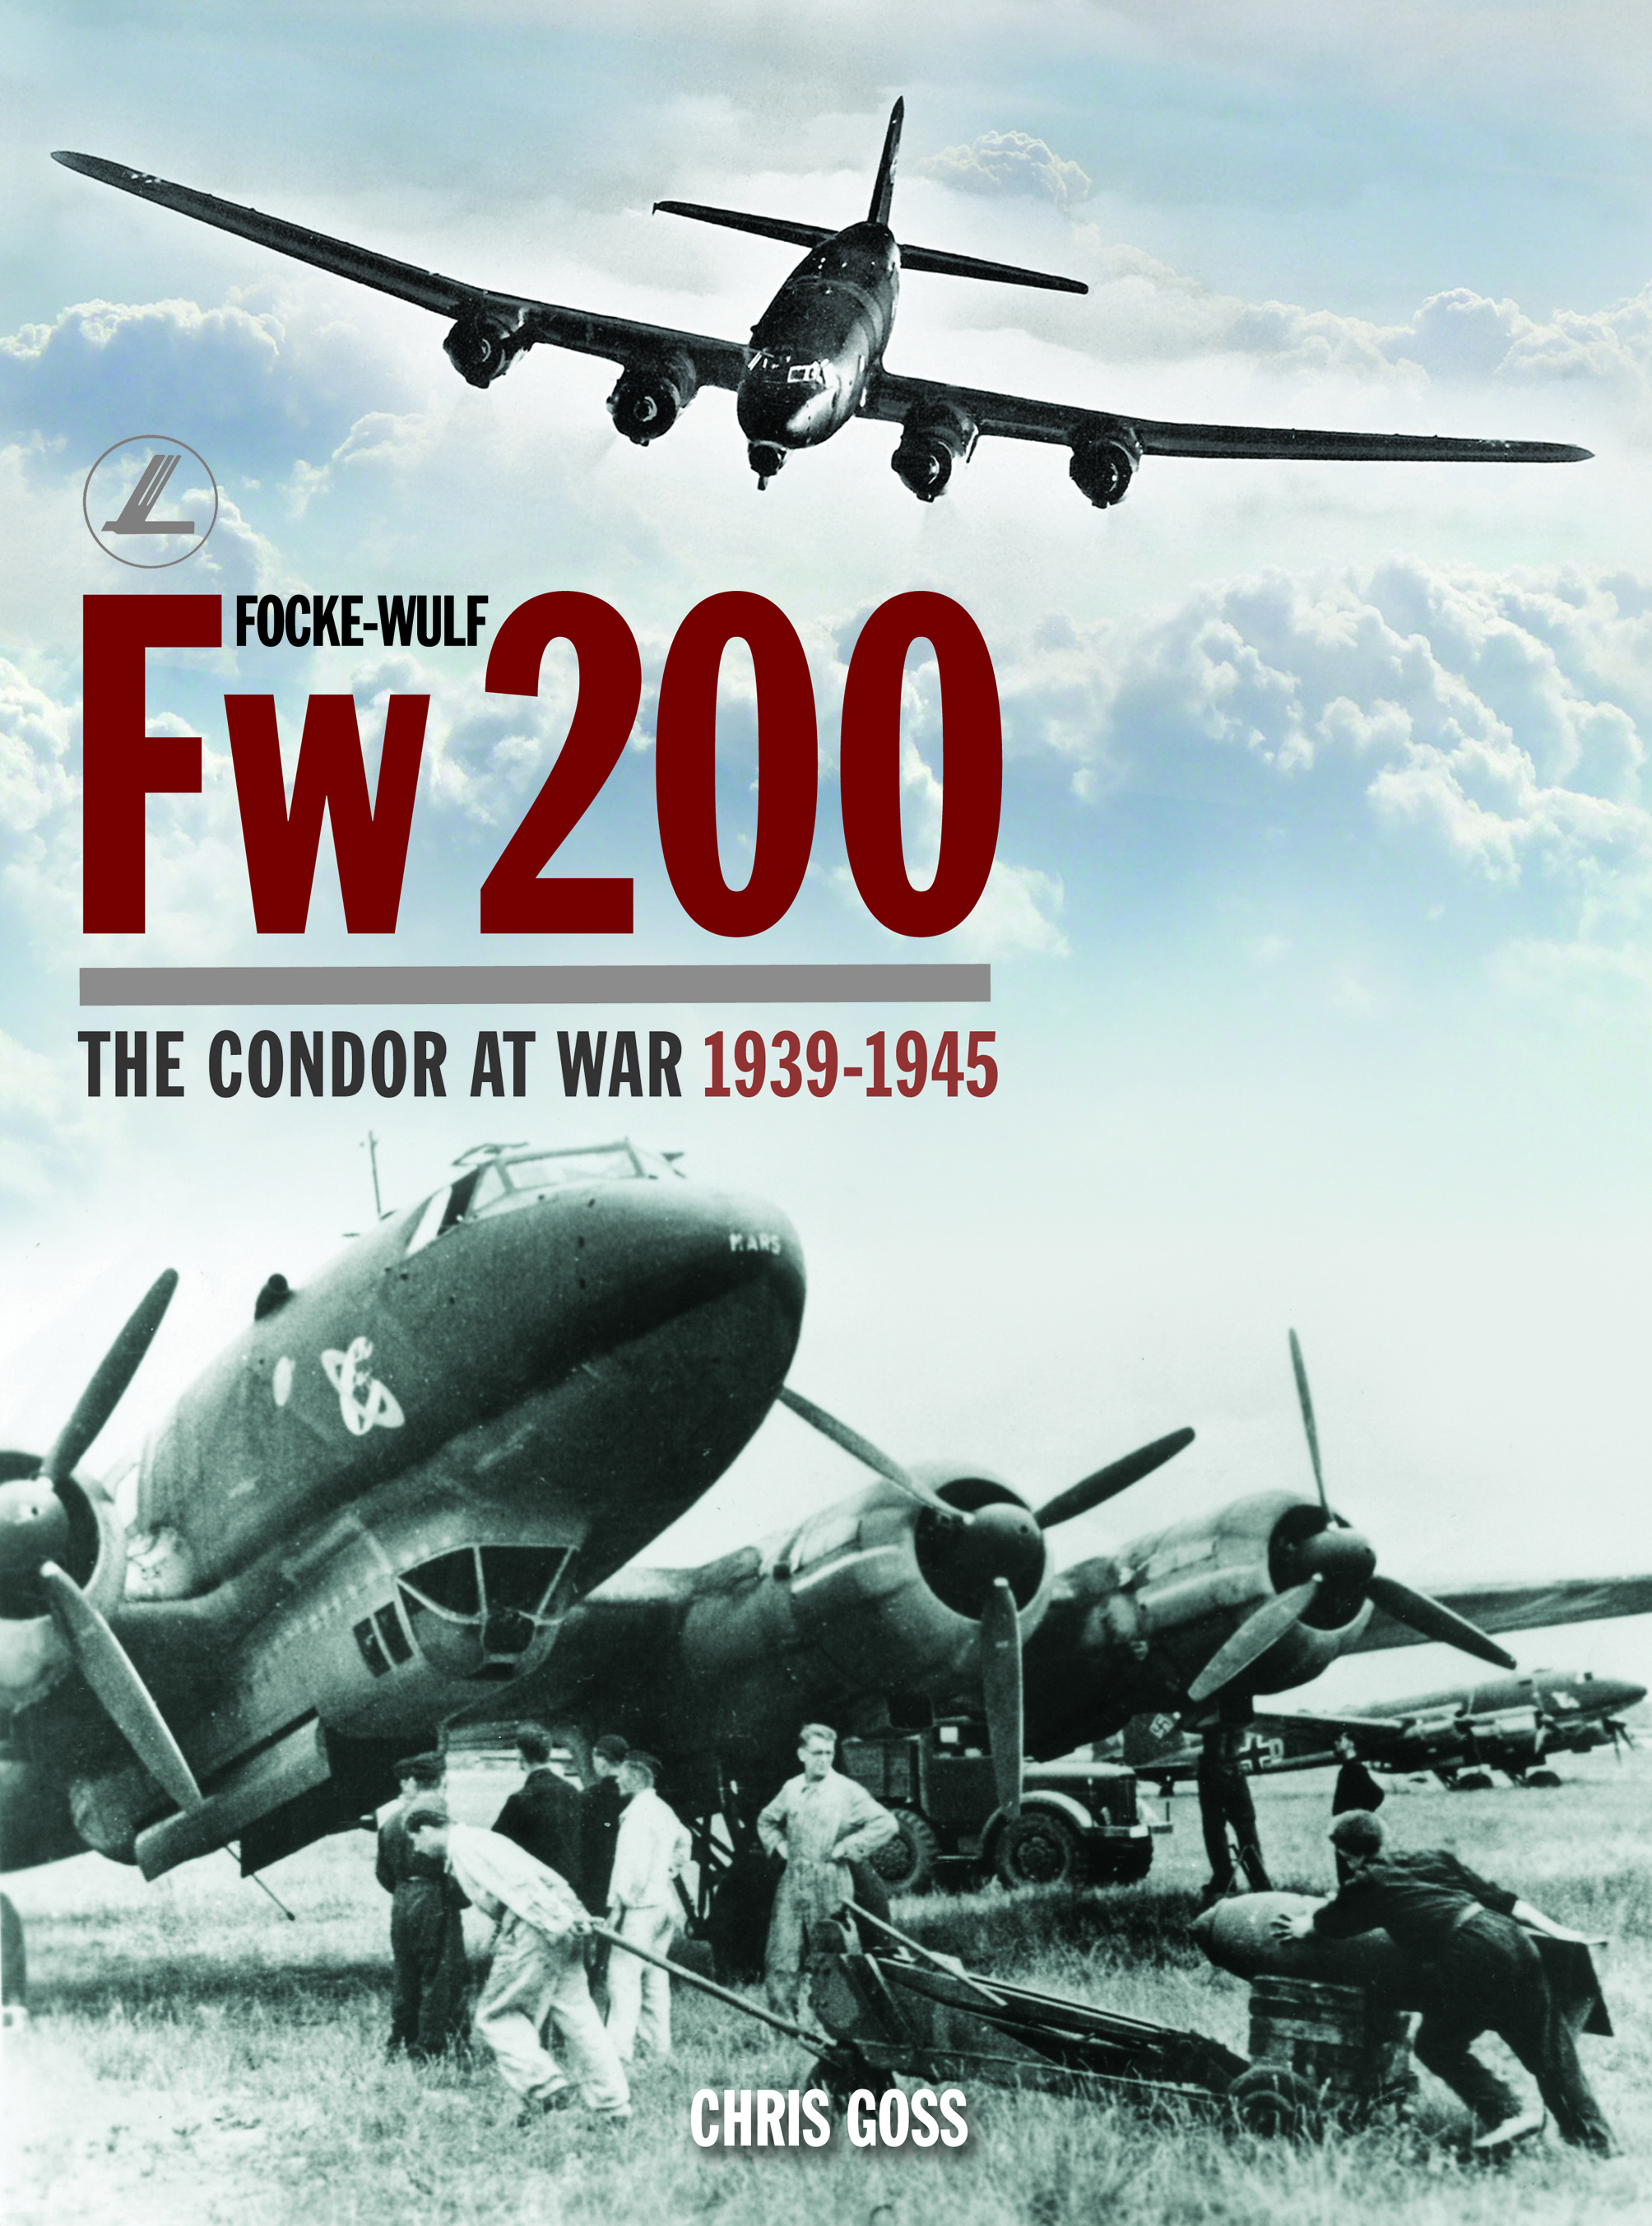 The Focke-Wulf Fw 200: The Condor at War 1939-1945